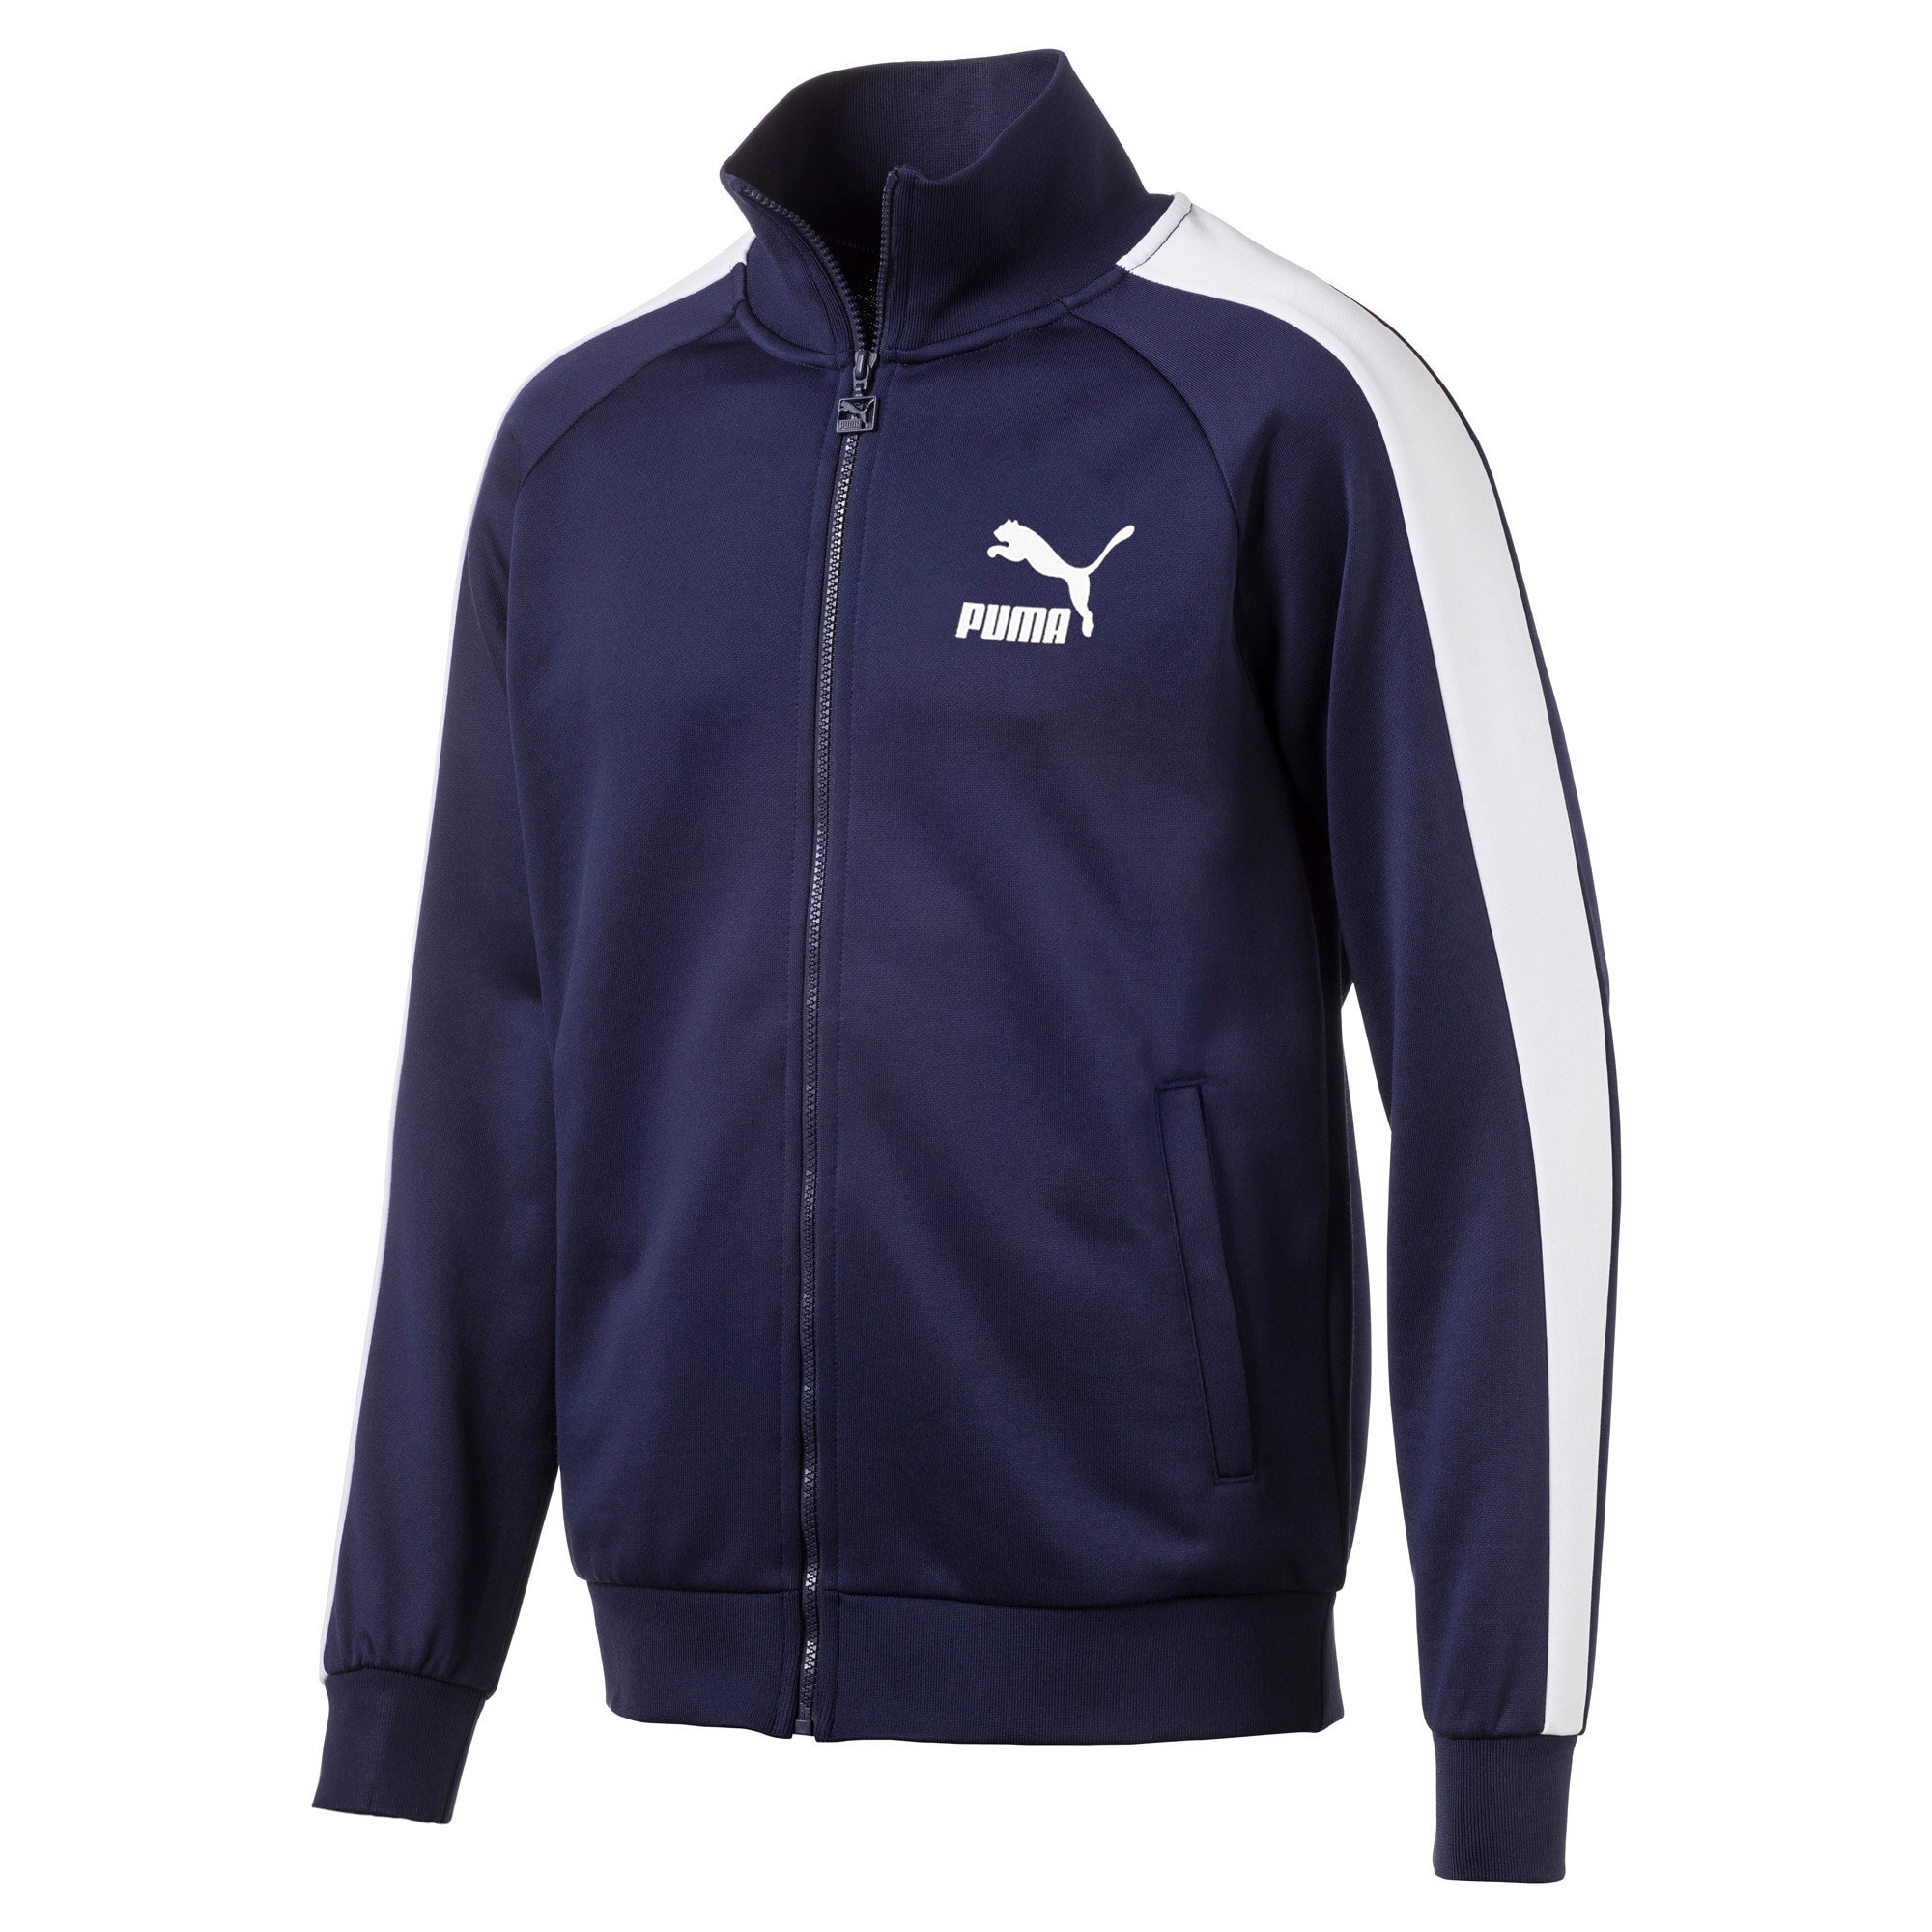 Iconic T7 PT Men's Track Jacket, Peacoat, large-IND